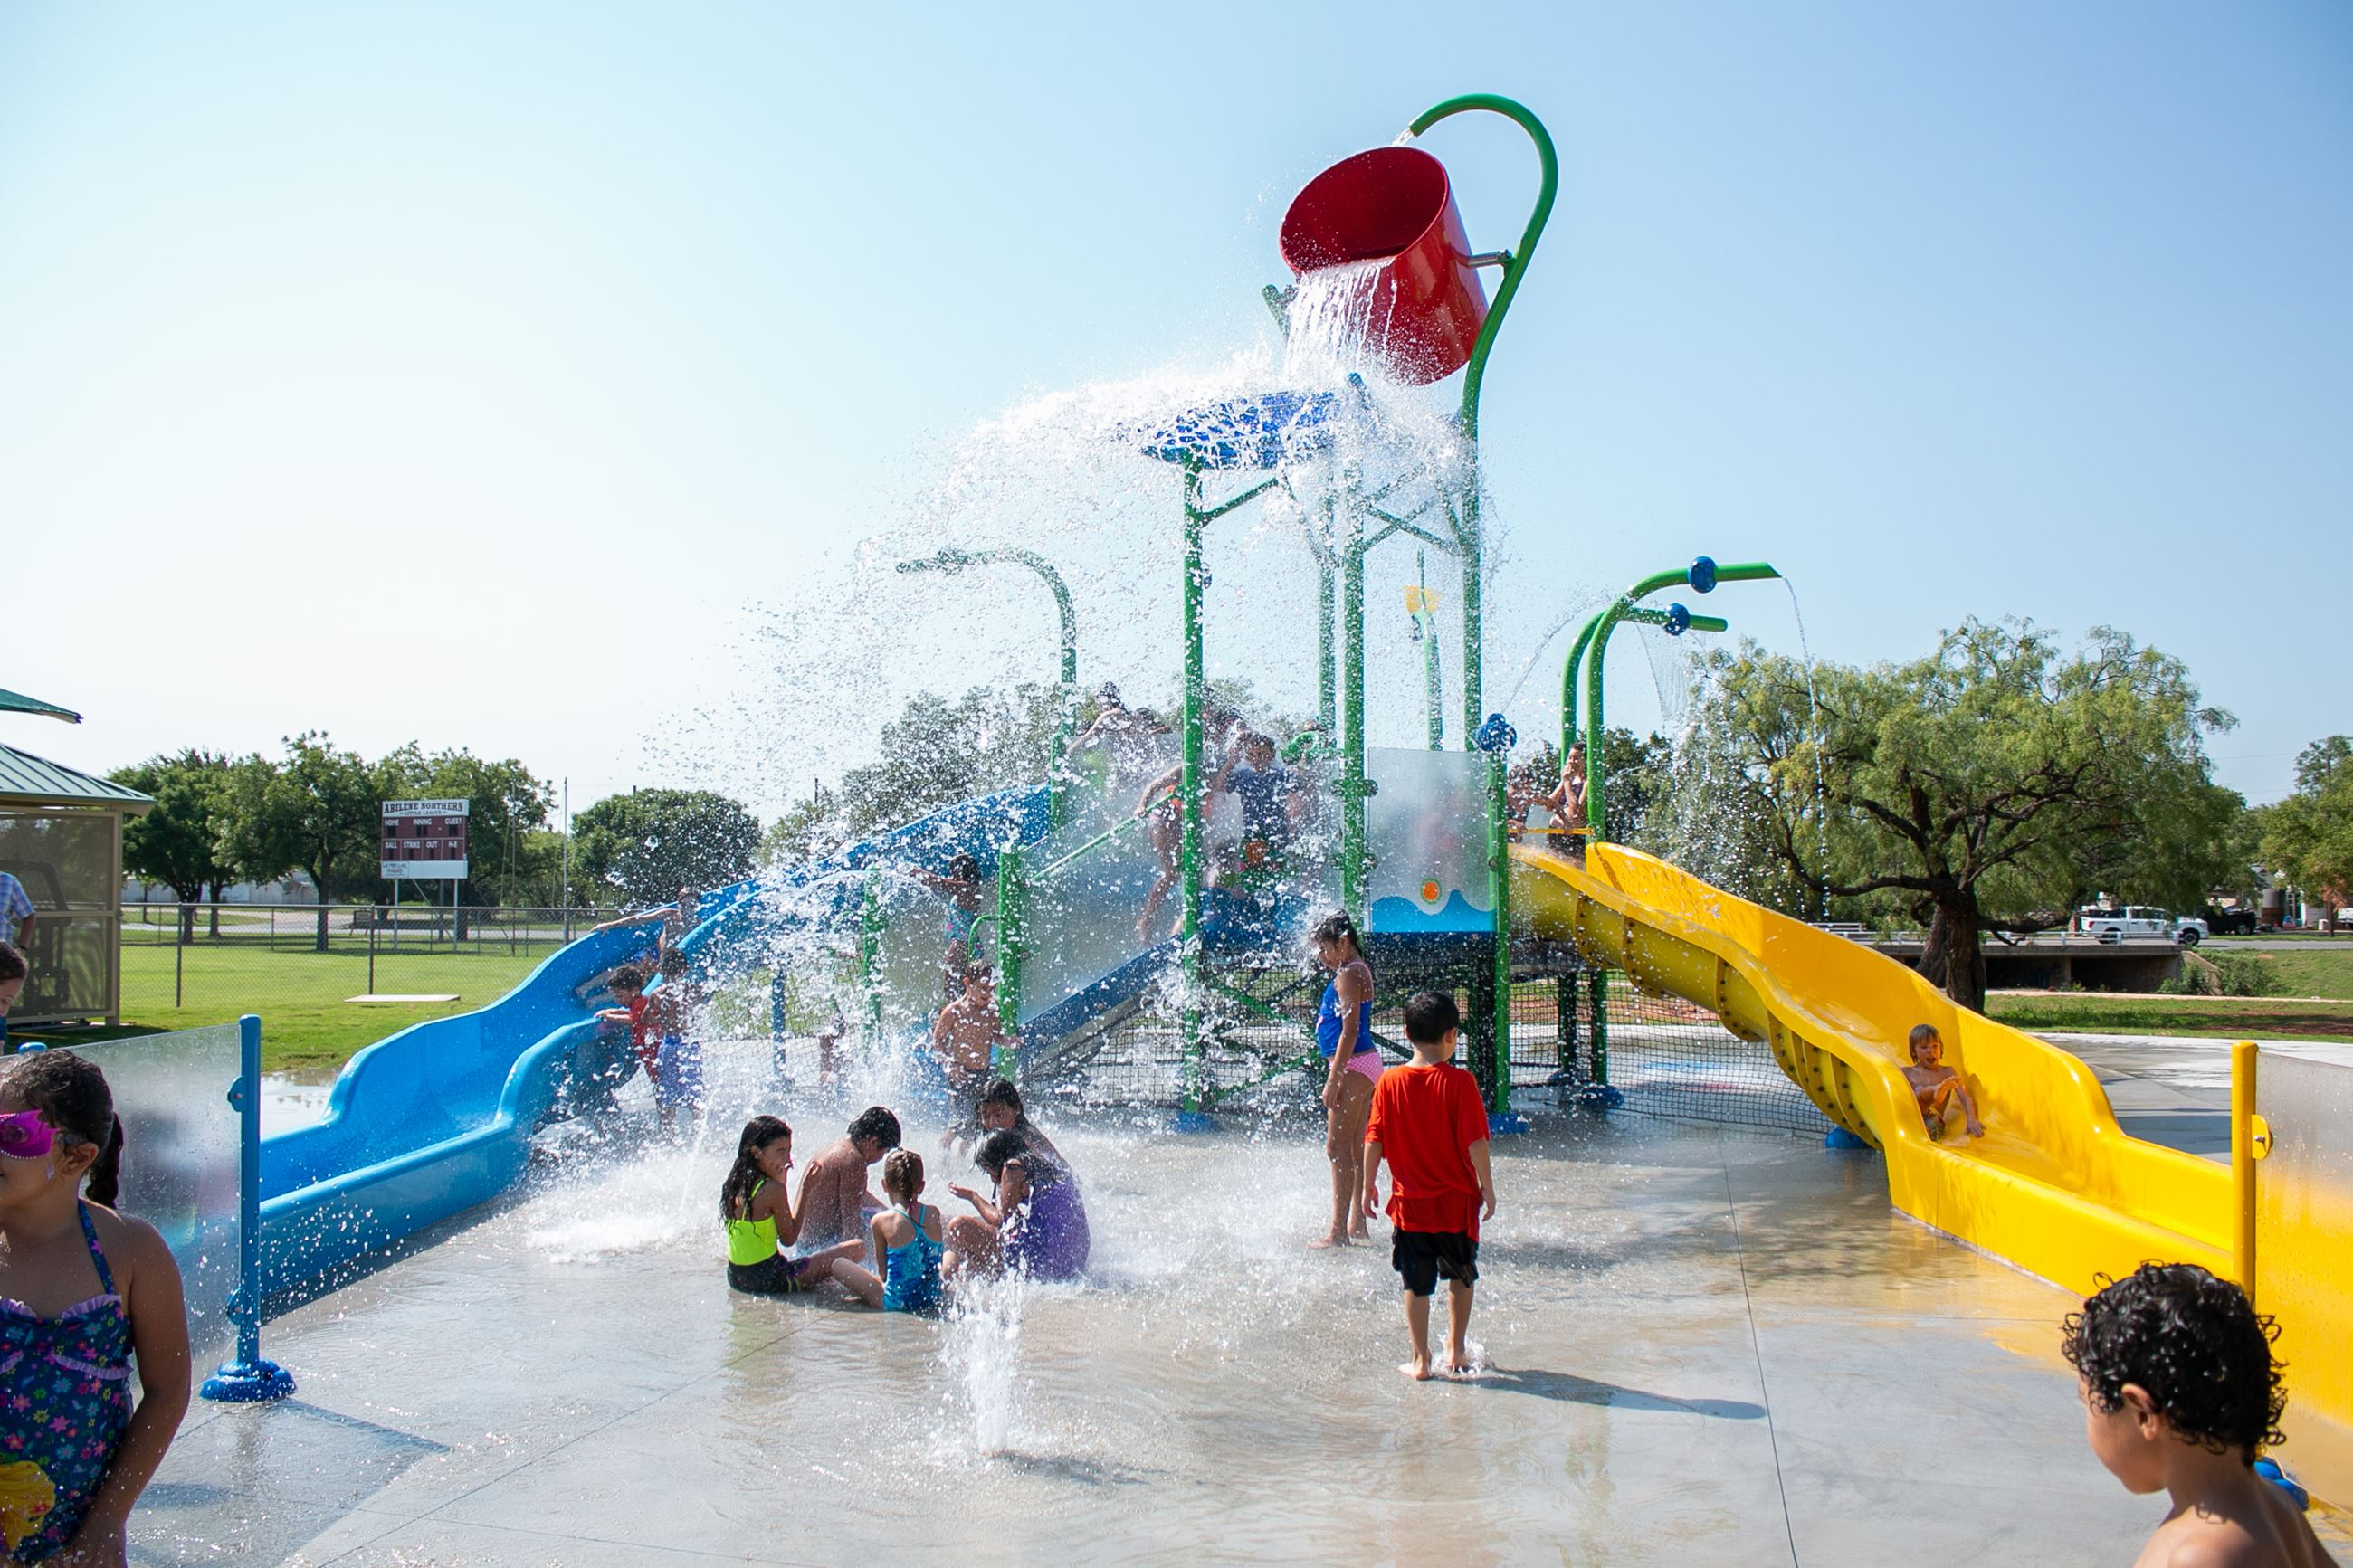 Sears Park Splash Pad Abilene Texas